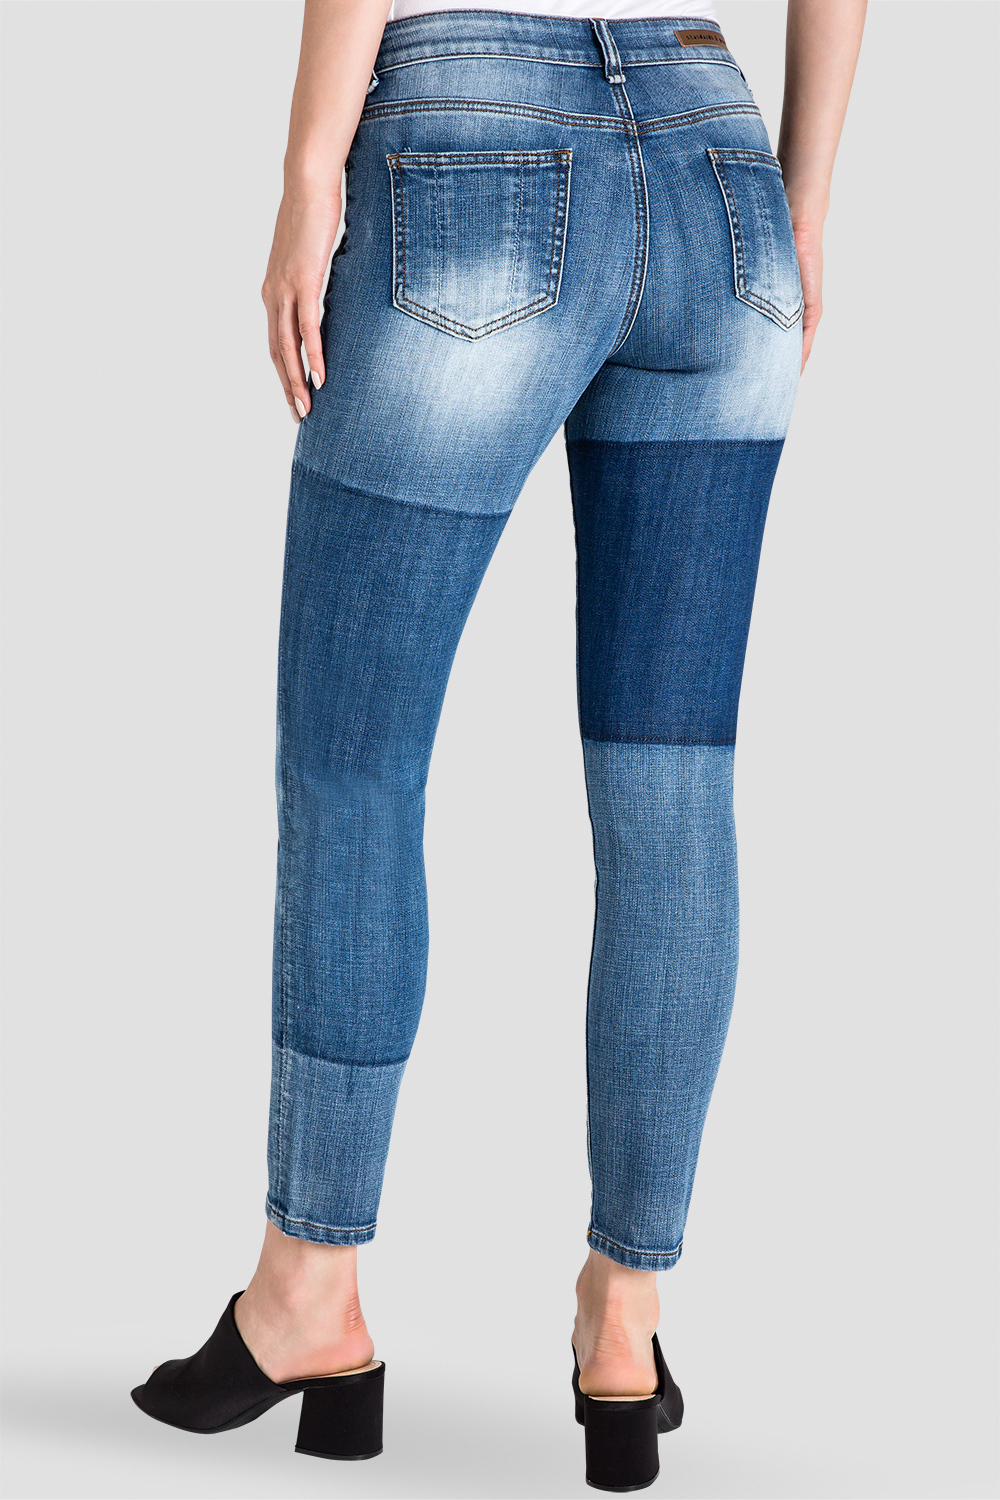 Standards & Practices Women's Patchwork Indigo Stretch Skinny Jeans